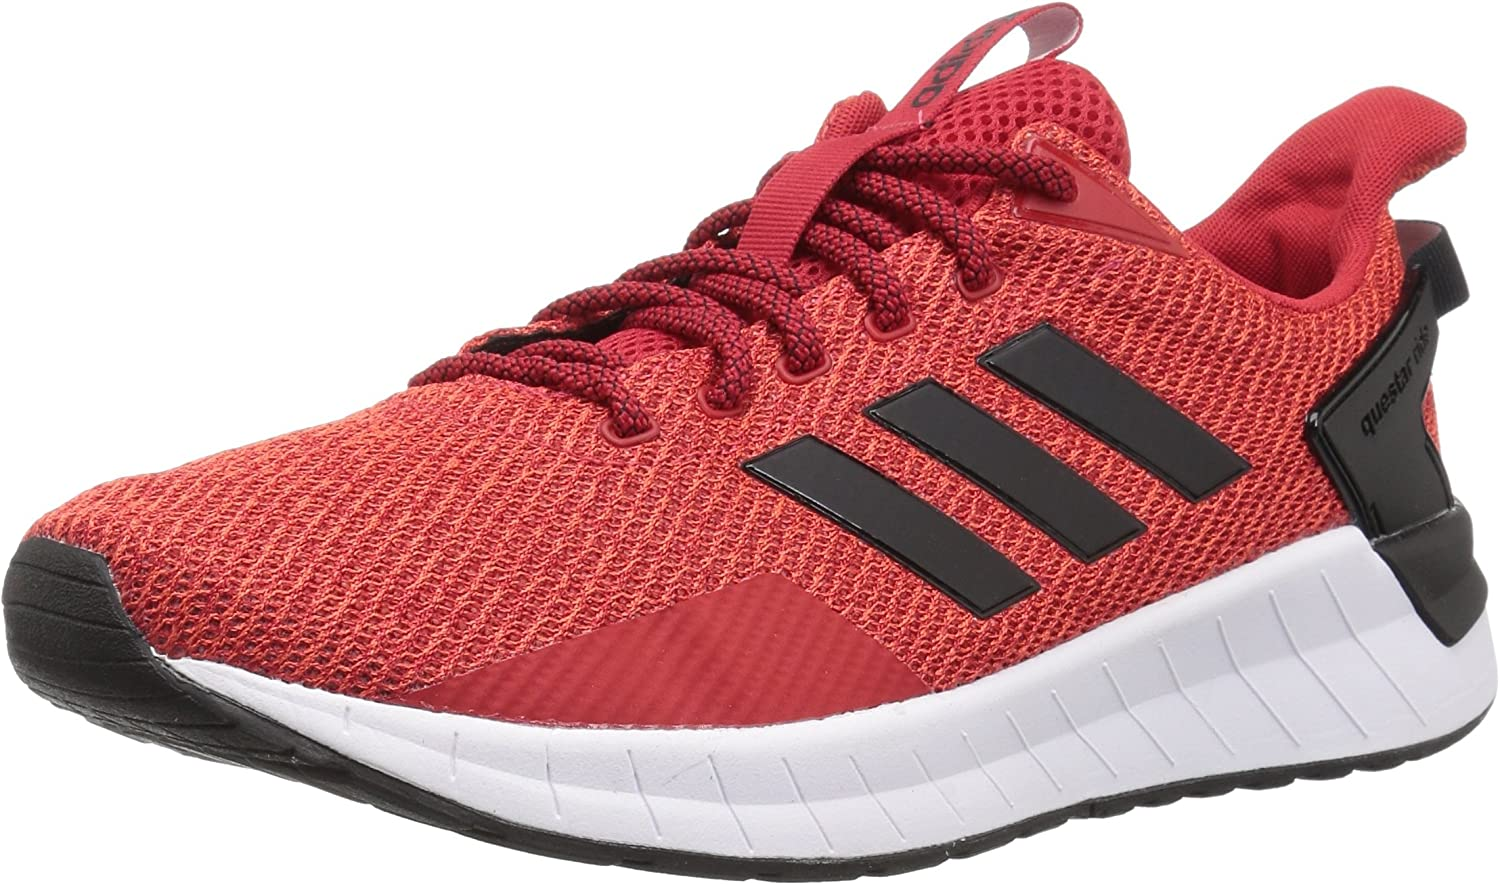 Adidas Womens Questar Ride Low Top Lace Up Running Sneaker